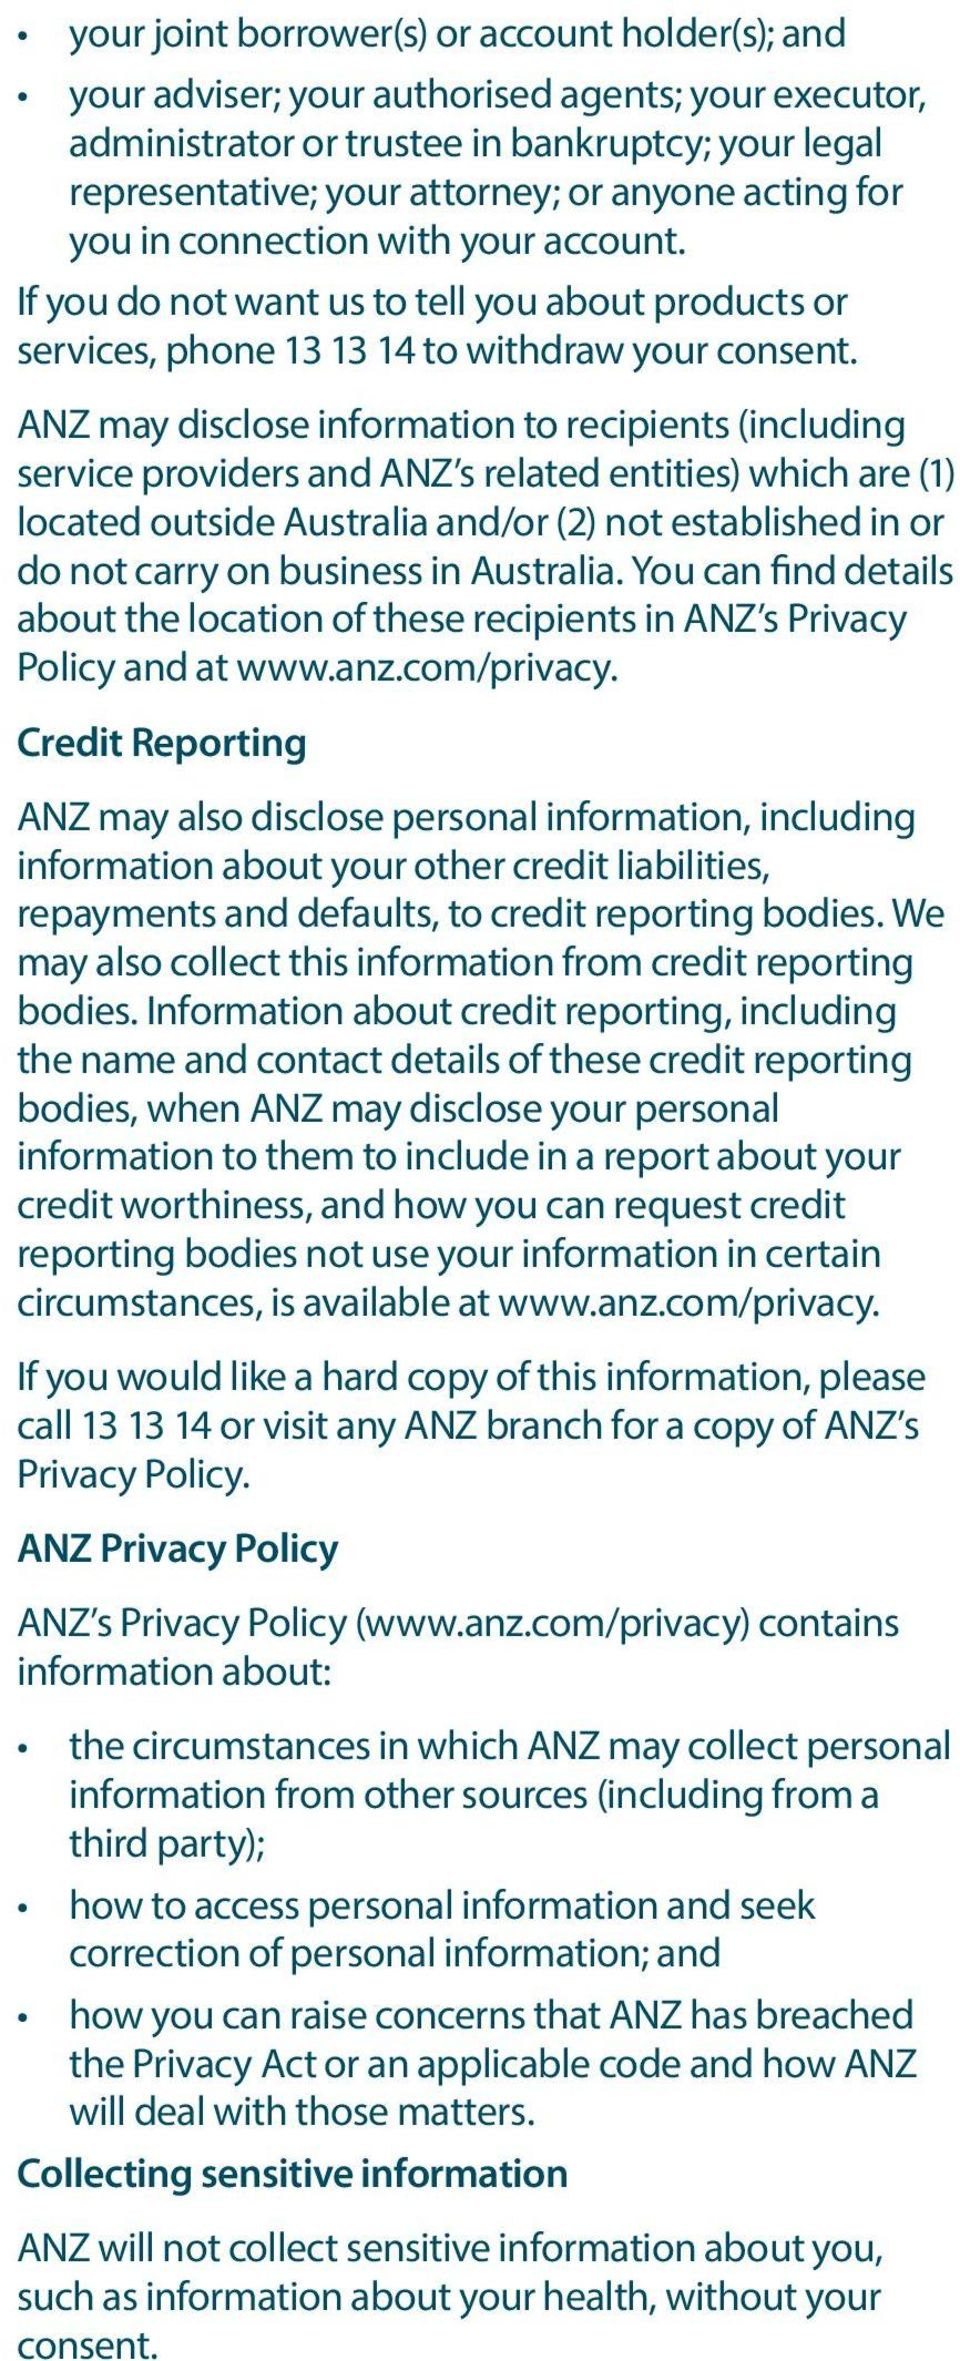 ANZ may disclose information to recipients (including service providers and ANZ s related entities) which are (1) located outside Australia and/or (2) not established in or do not carry on business